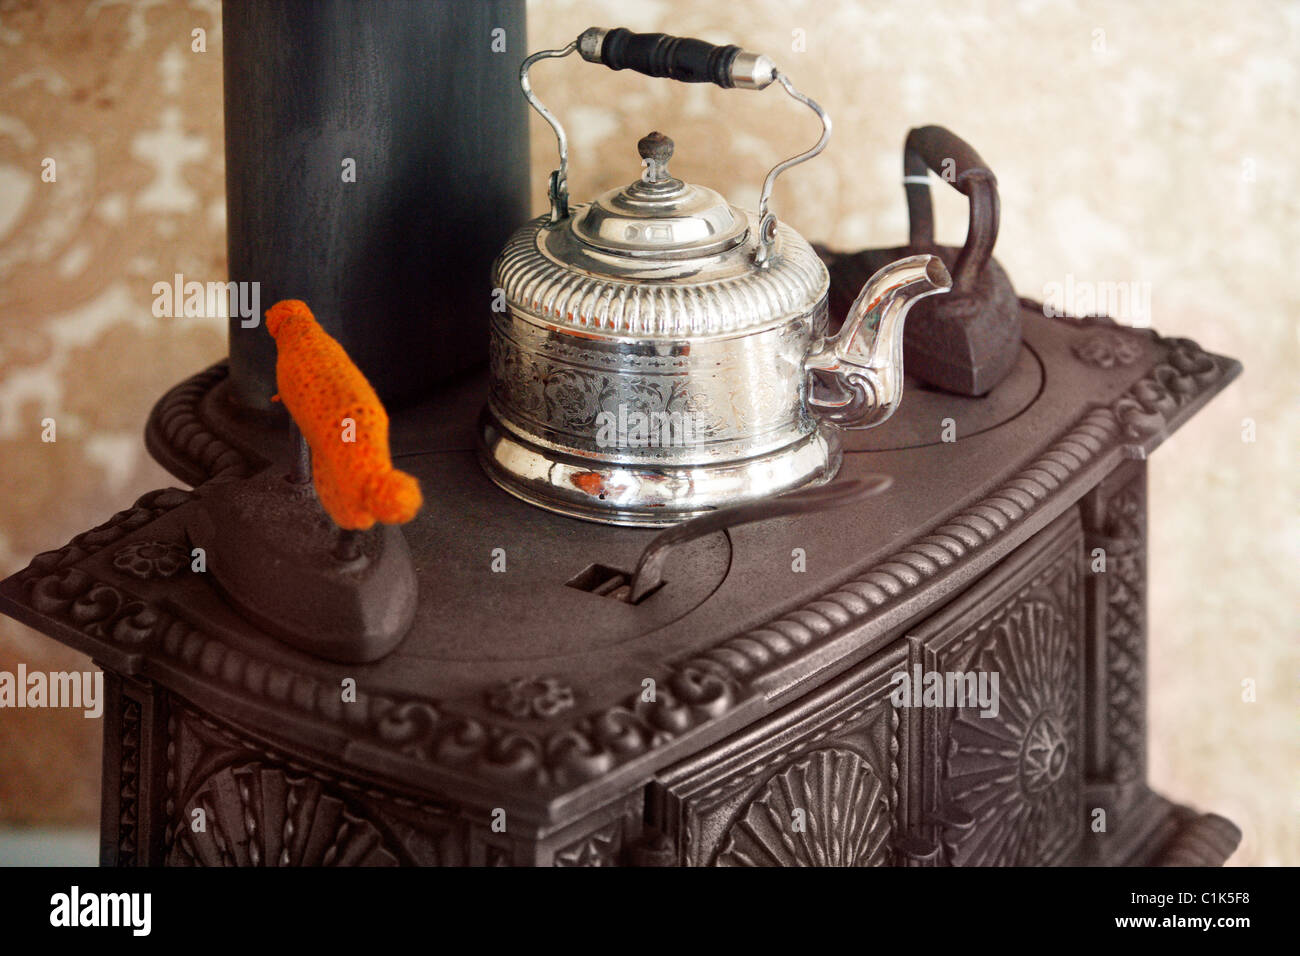 An Antique Cast Iron Stove With A Teapot And Antique Irons